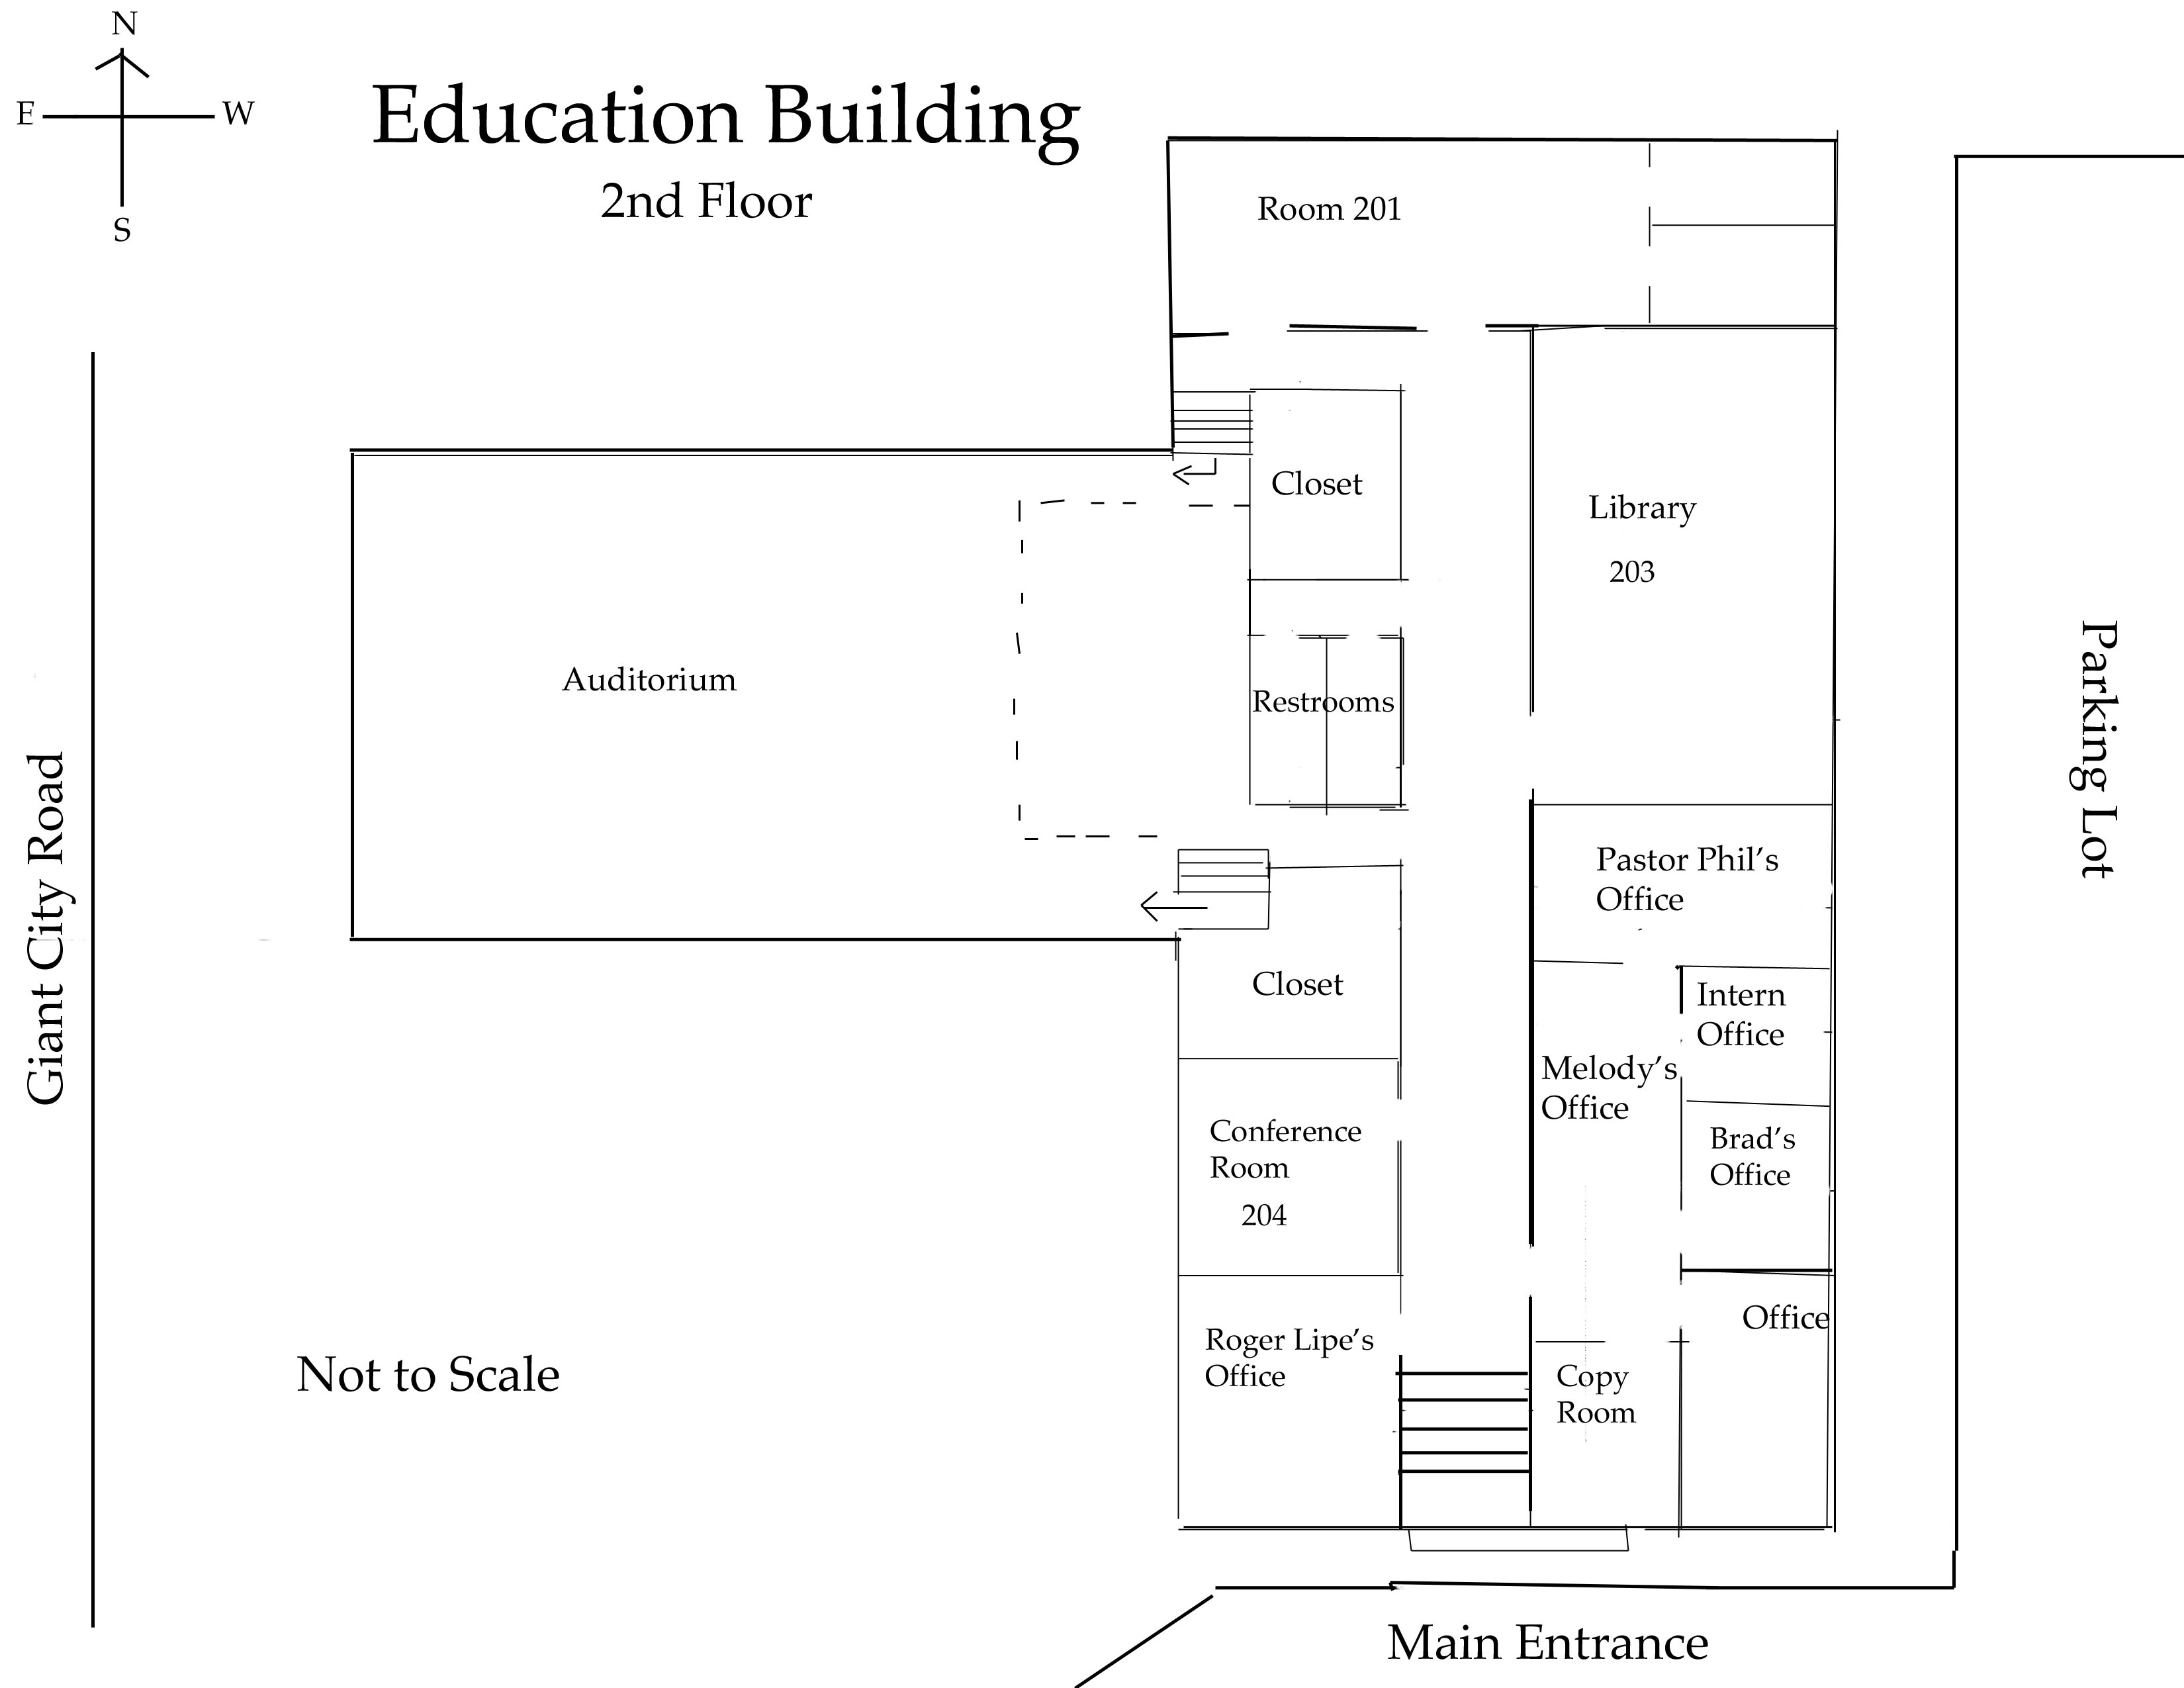 Education Building Second Floor